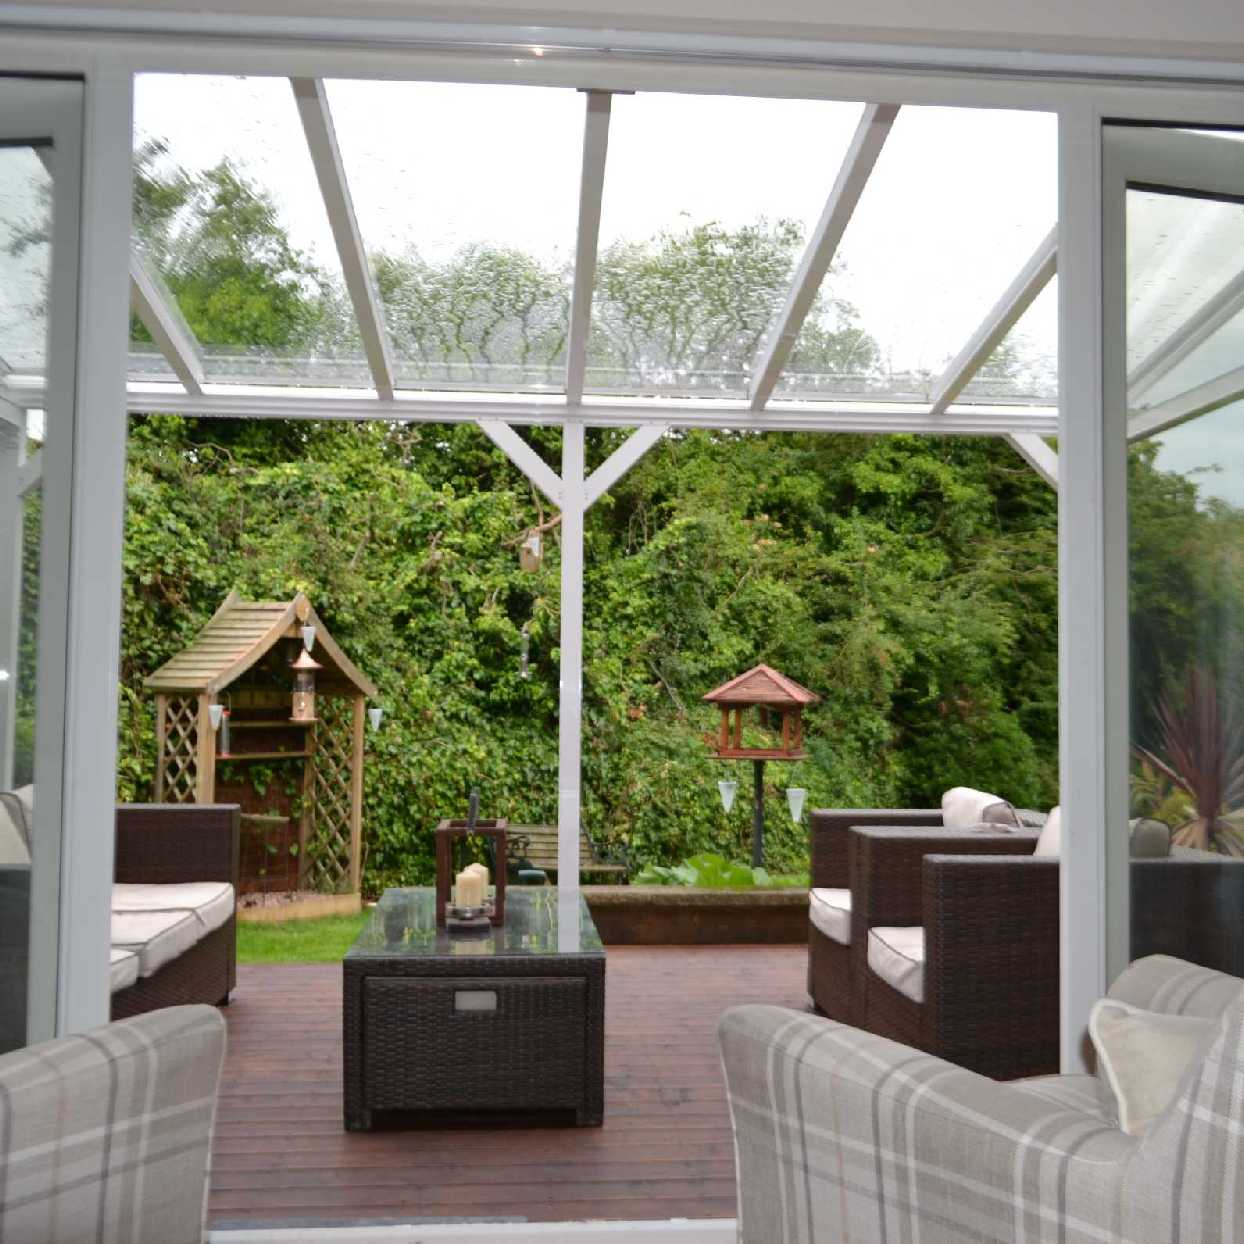 Great selection of Omega Smart Lean-To Canopy UNGLAZED for 6mm Glazing - 8.4m (W) x 2.5m (P), (4) Supporting Posts